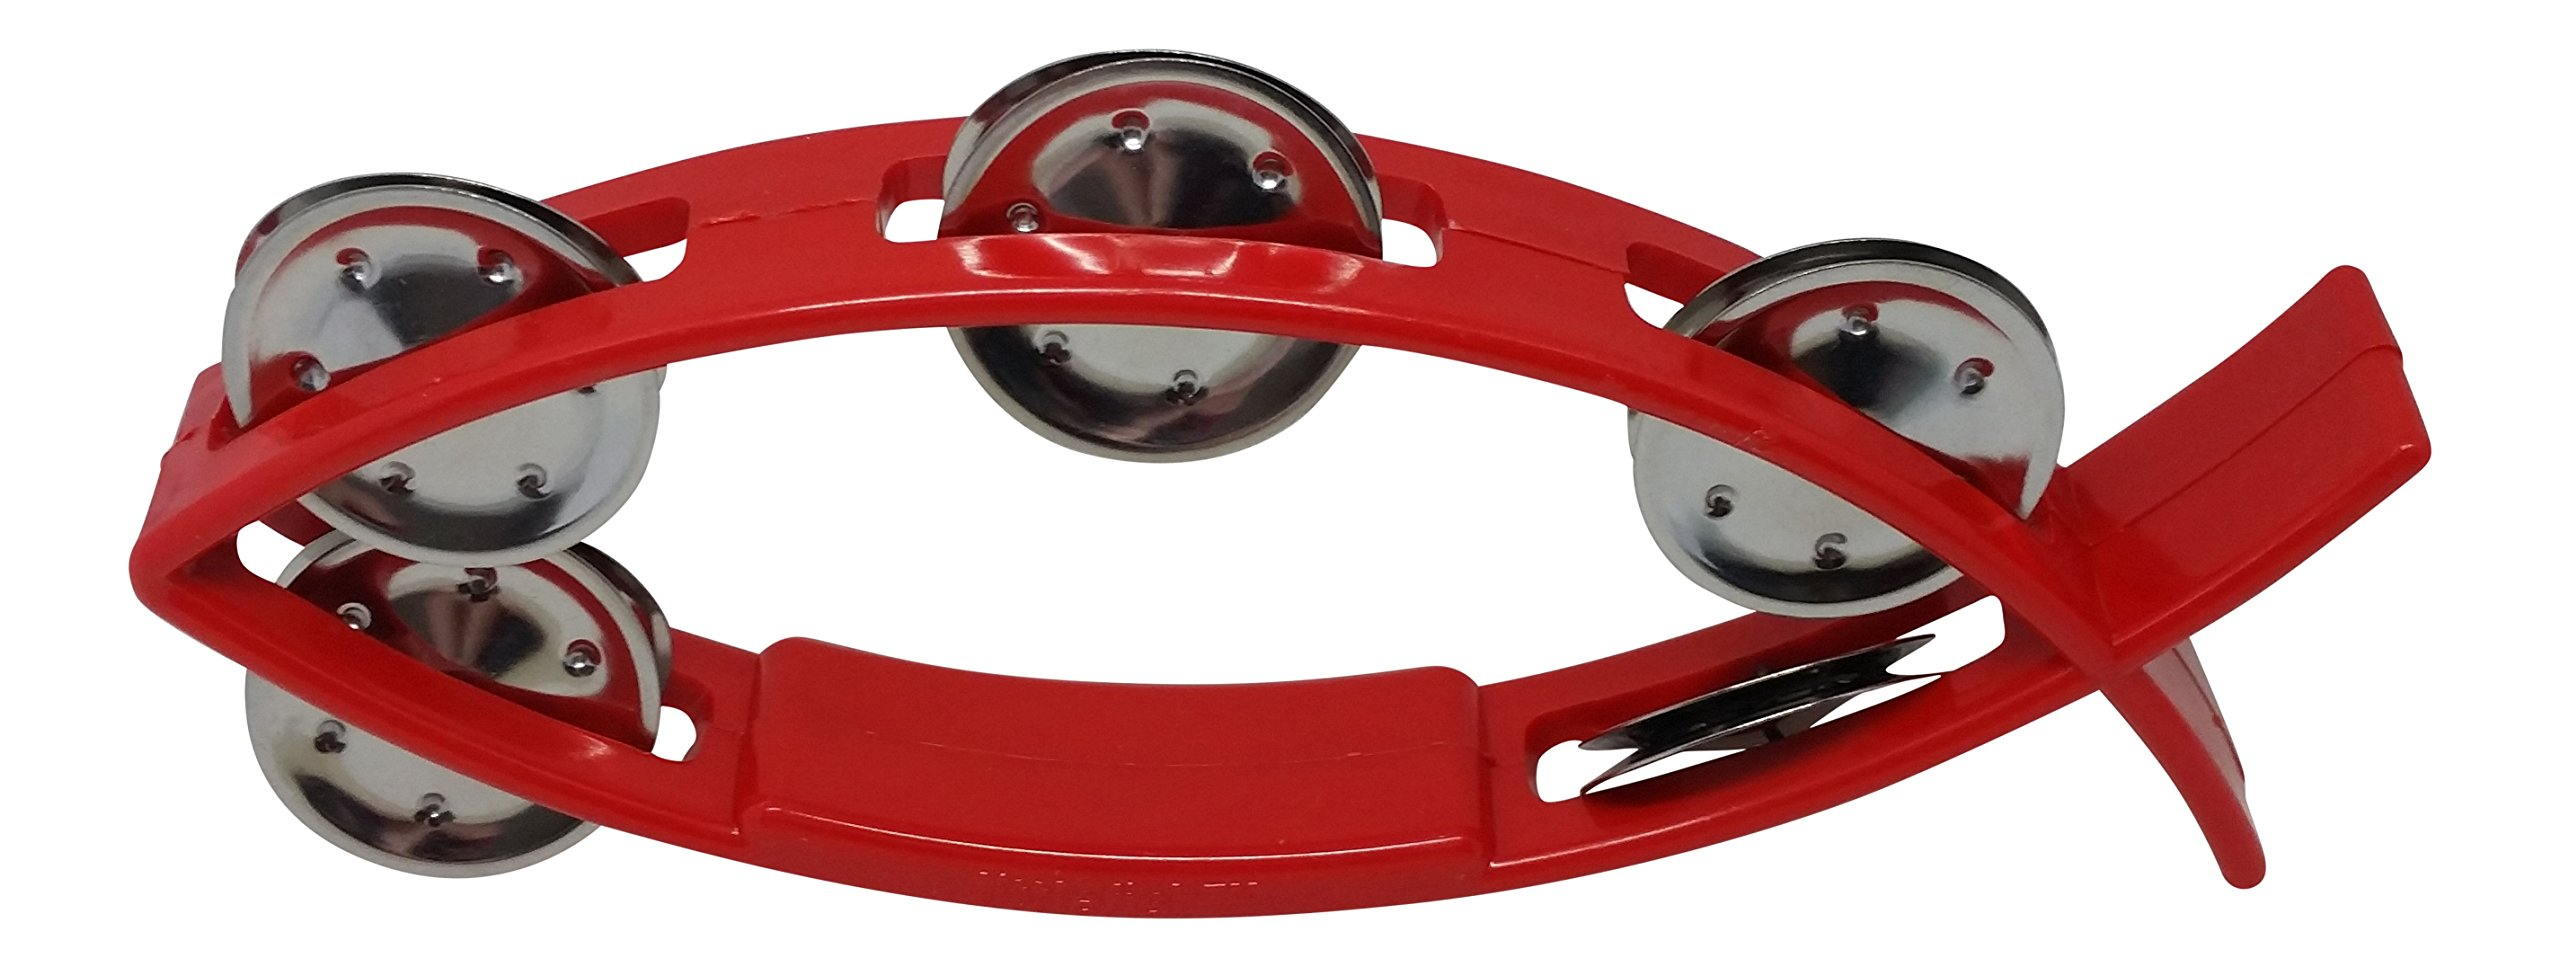 Littlefish RB183R Tambourine for Kids 8 x 3 Inches with 5 Pairs of Single Row Stainless Steel Jingles Red